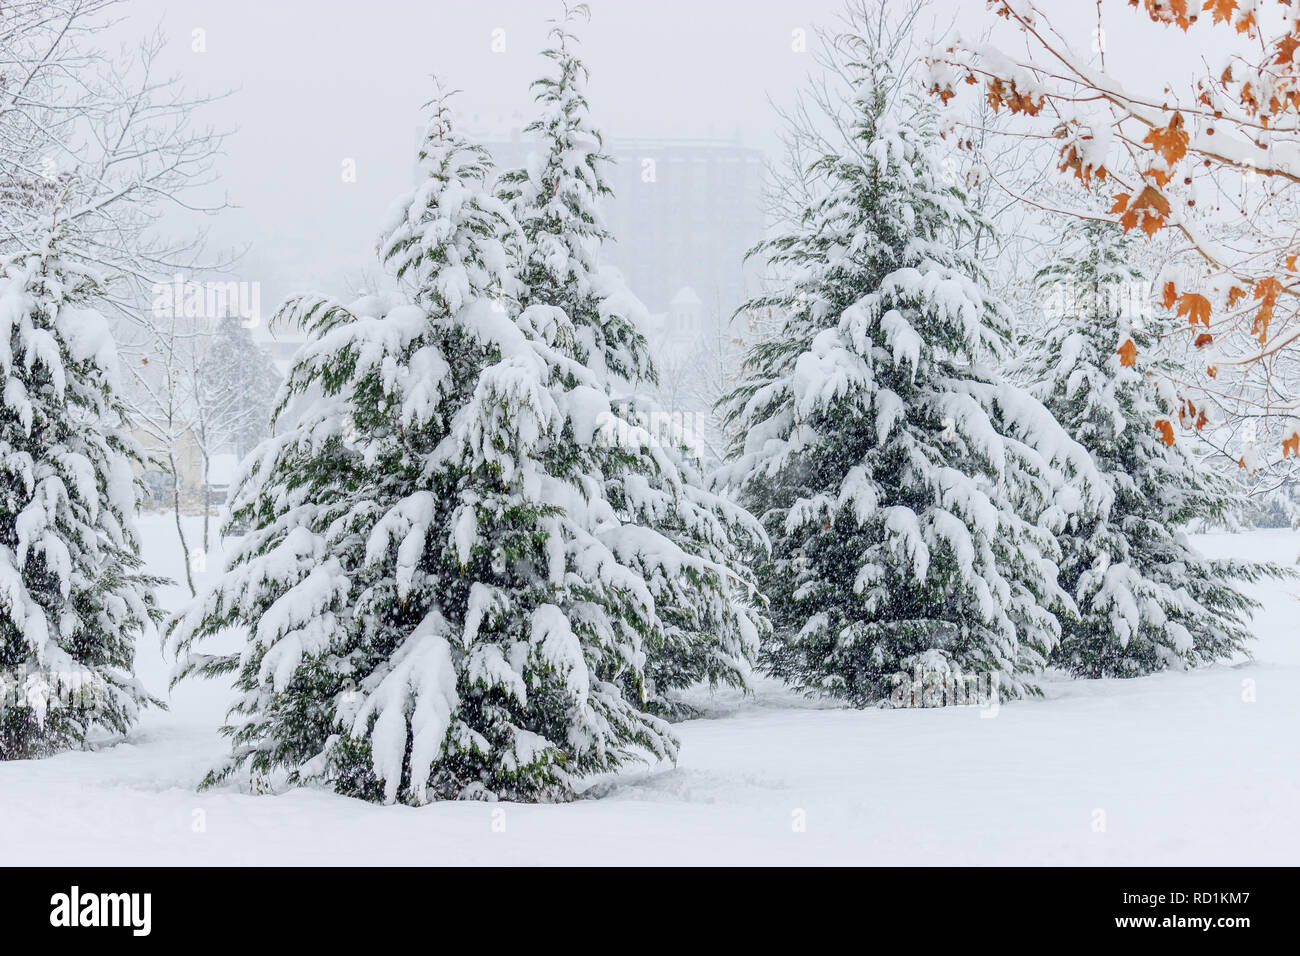 Winter landscape.Green spruces covered with snow, close up - Stock Image